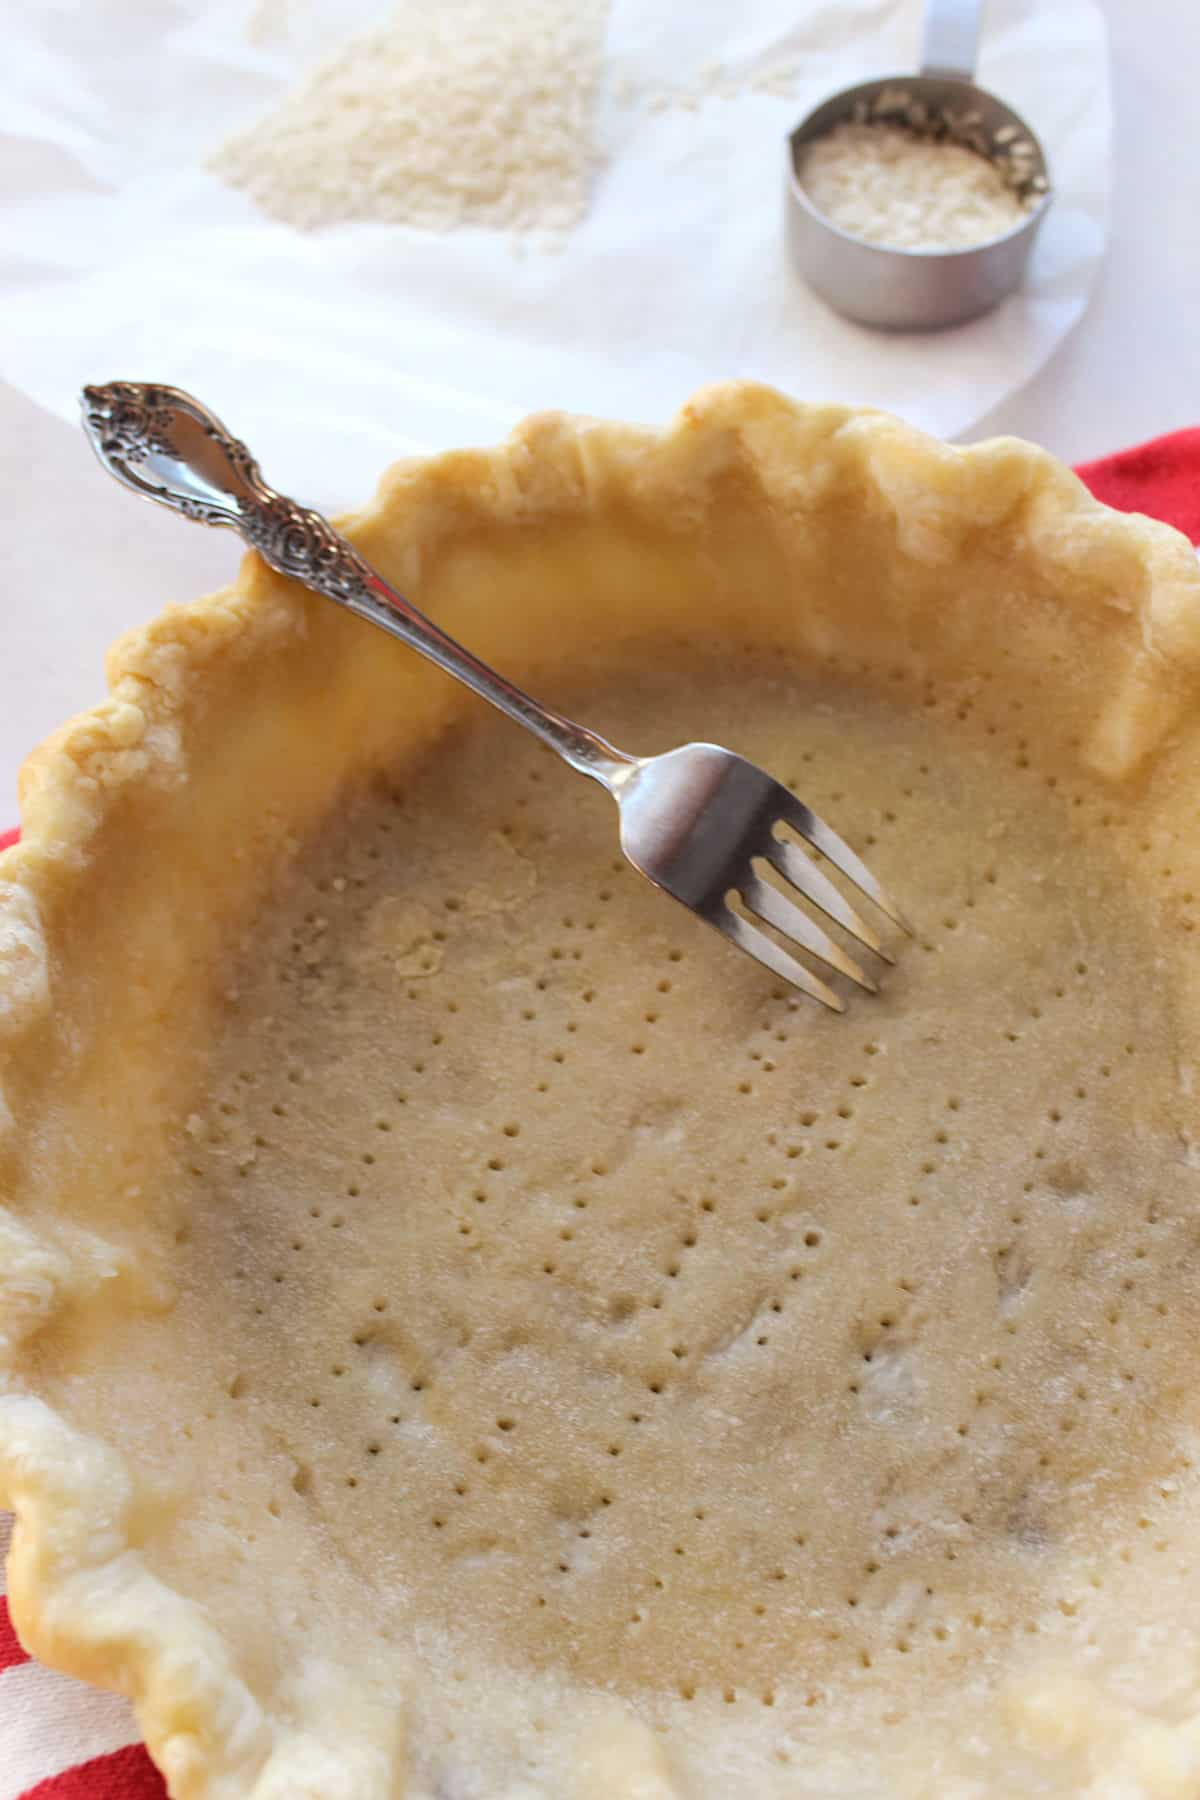 docking a pie crust before baking